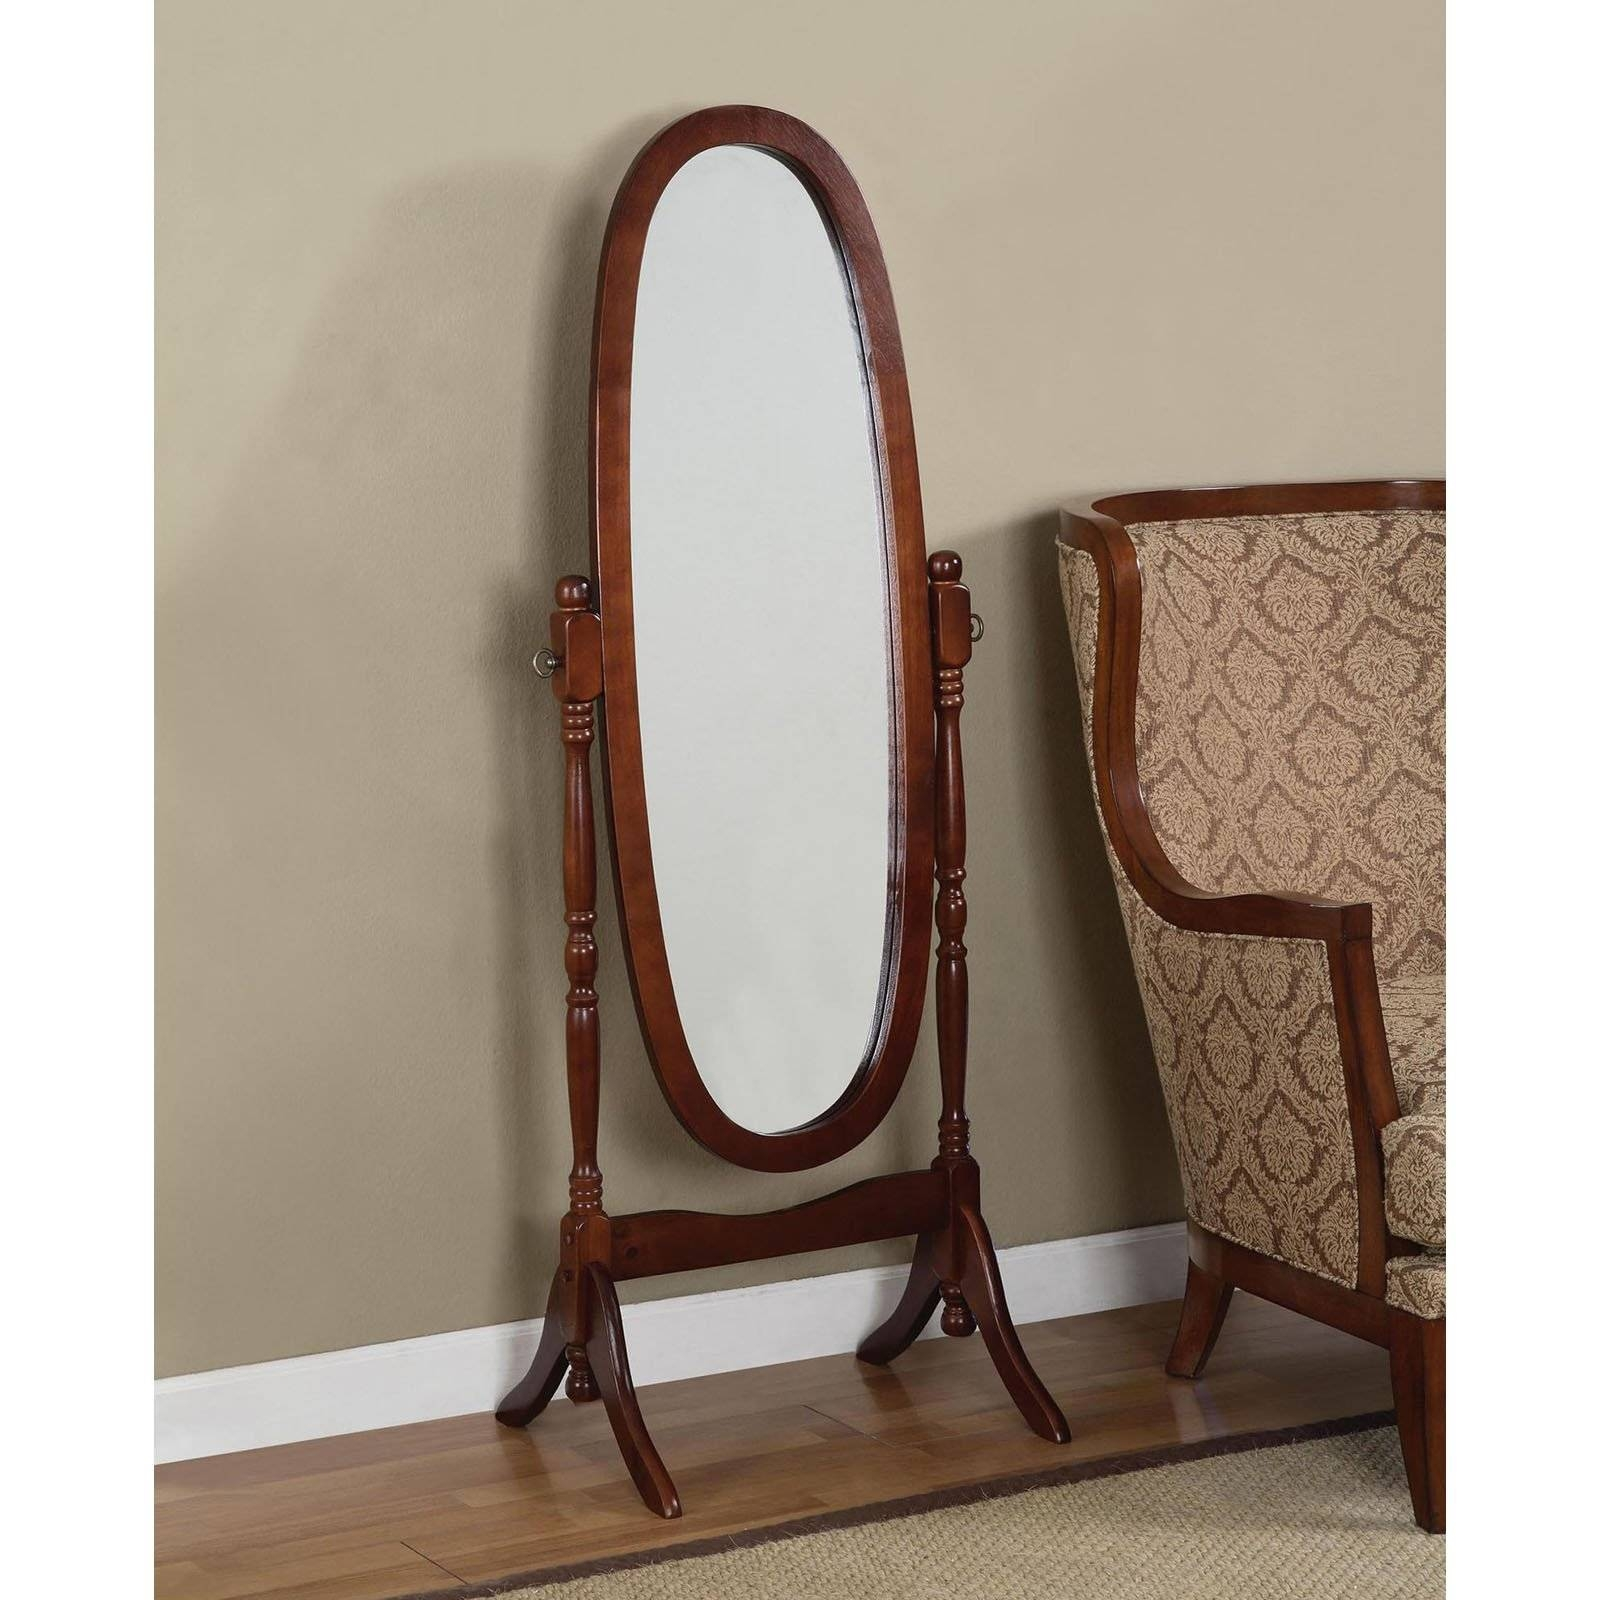 Belham Living Removable Decorative Top Cheval Mirror - Cherry within Cheval Mirrors (Image 7 of 25)